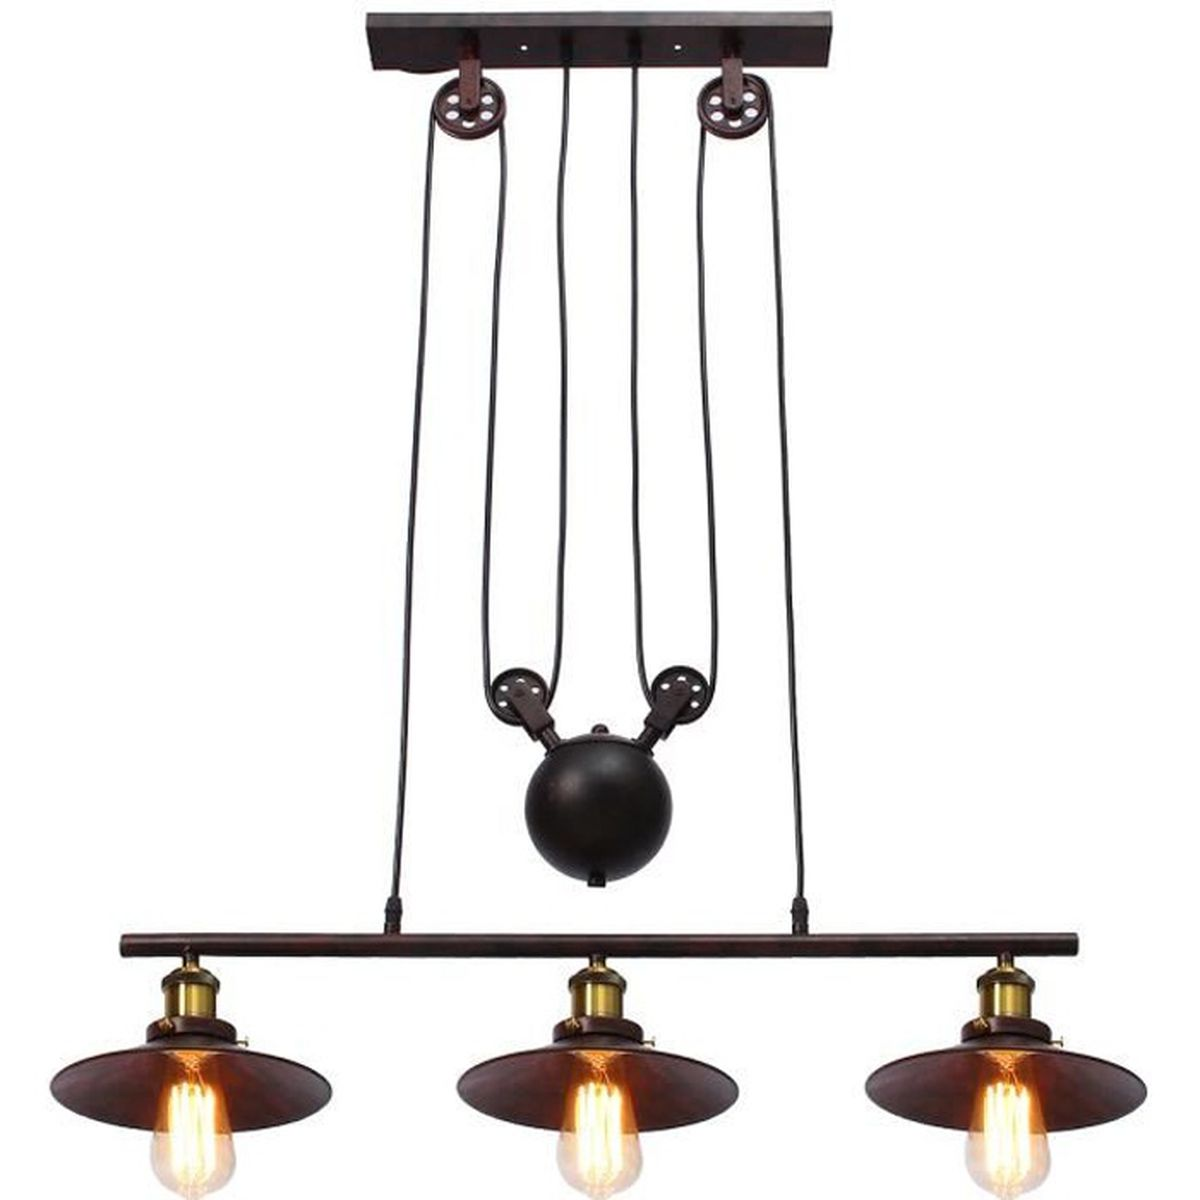 luminaire suspension 3 lampes qj31 montrealeast. Black Bedroom Furniture Sets. Home Design Ideas